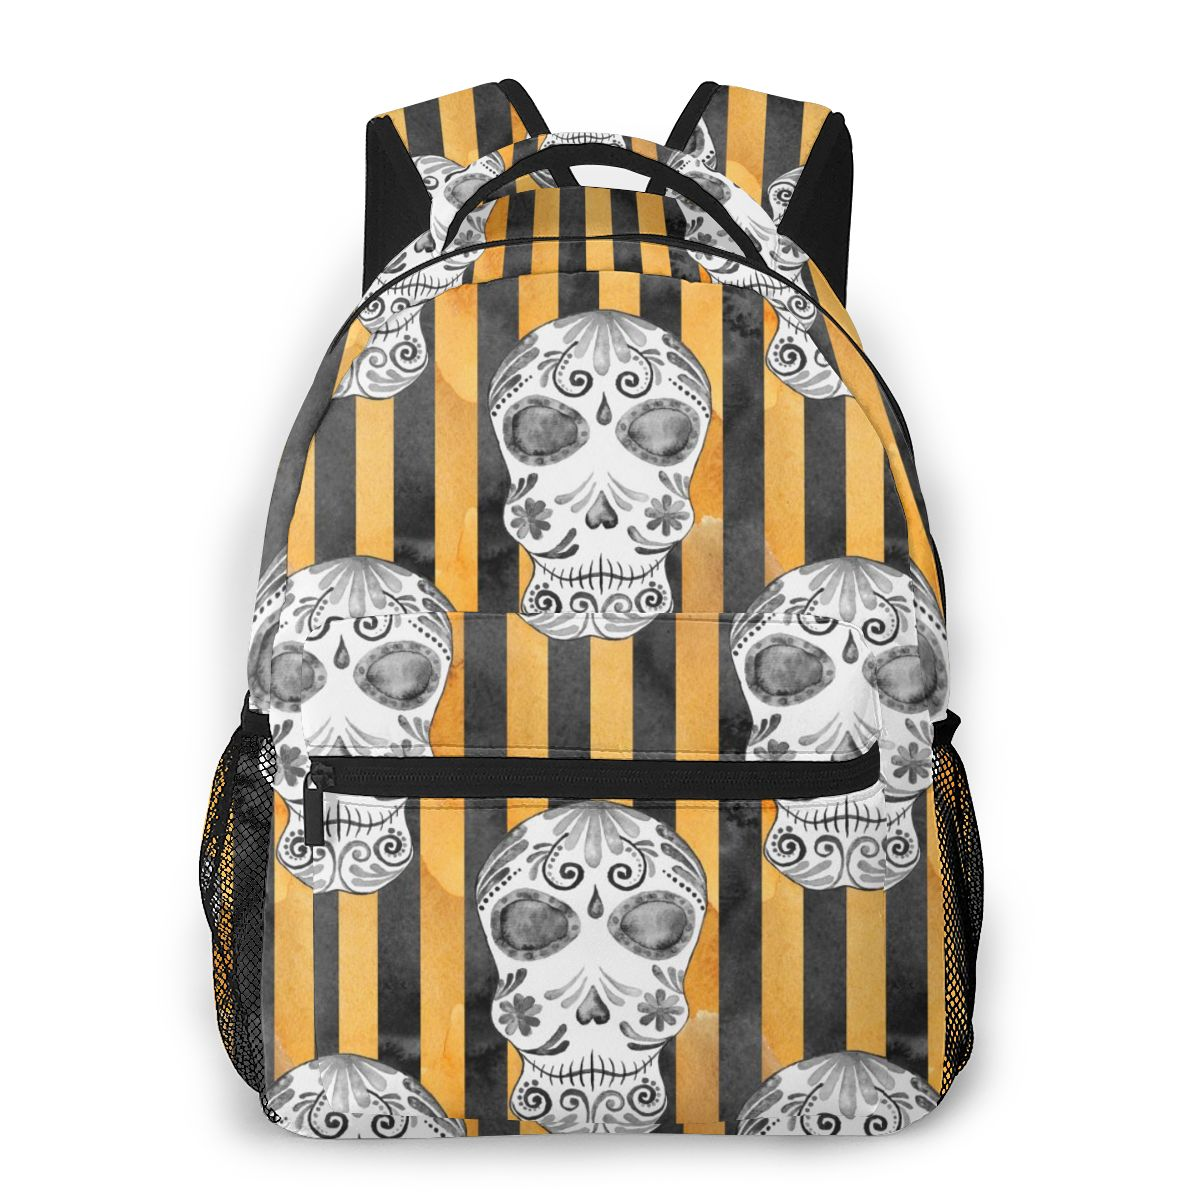 Skull Head Stripe Print Casual Daypack Travel School Bag With Pockets For Boys Teenagers